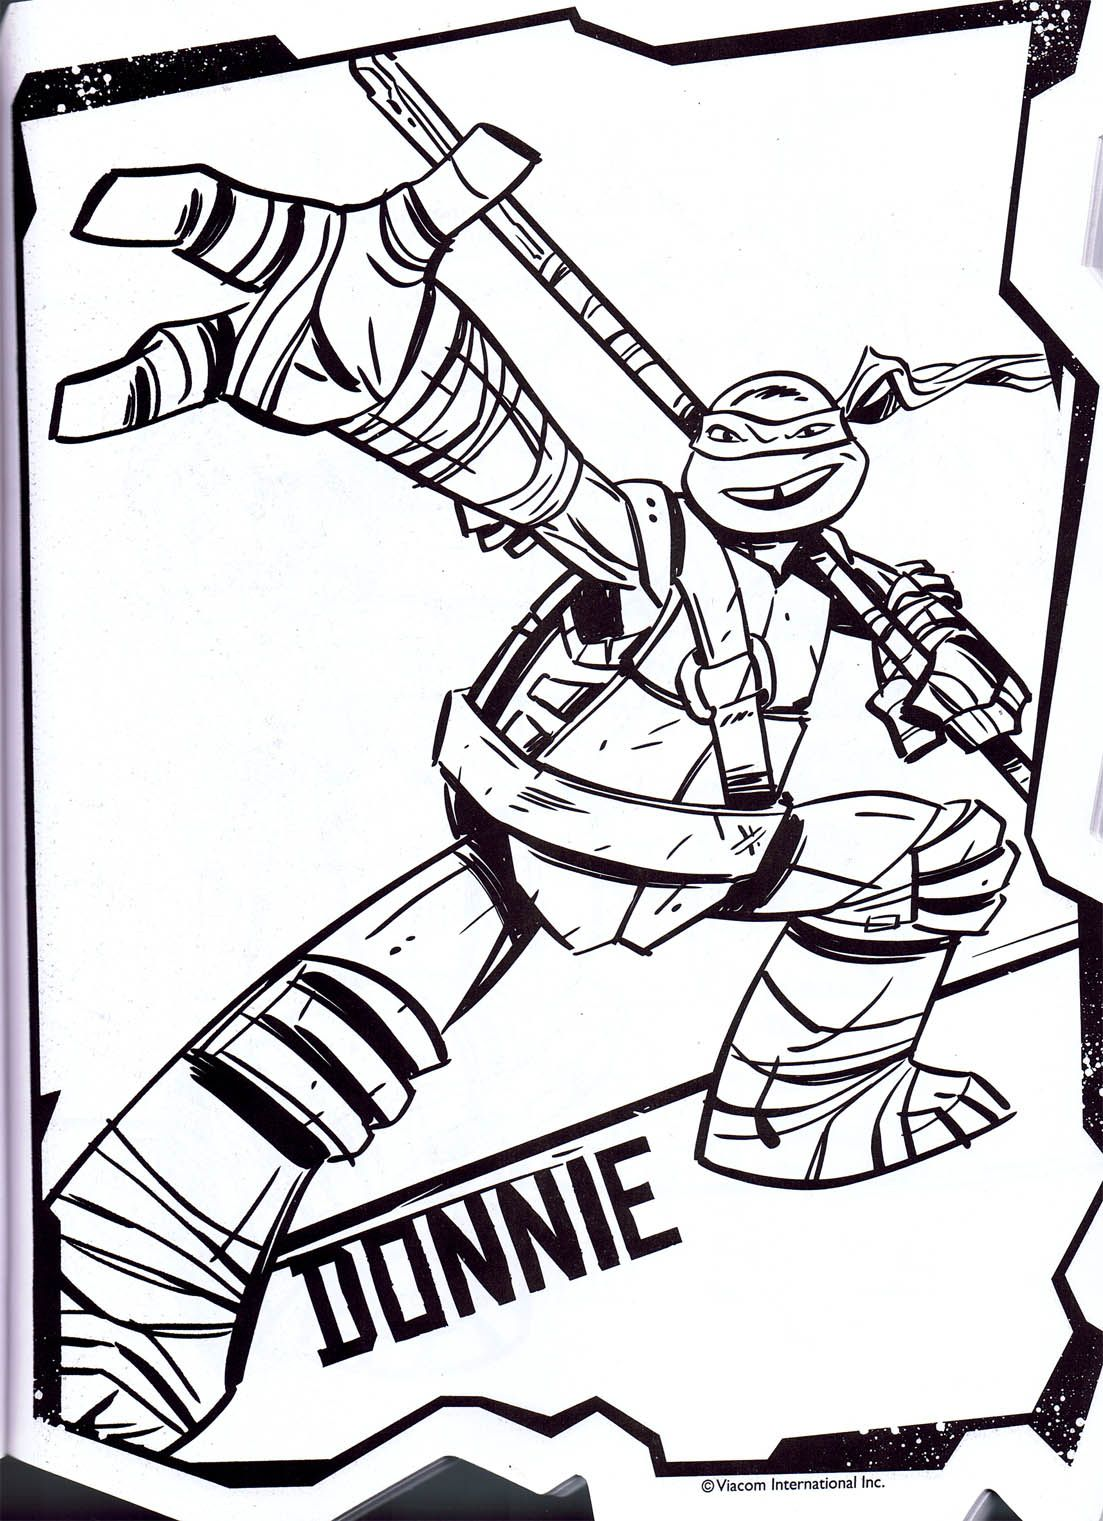 Donatello Coloring Pages Coloring Home Mutant Turtles Donatello Coloring Pages